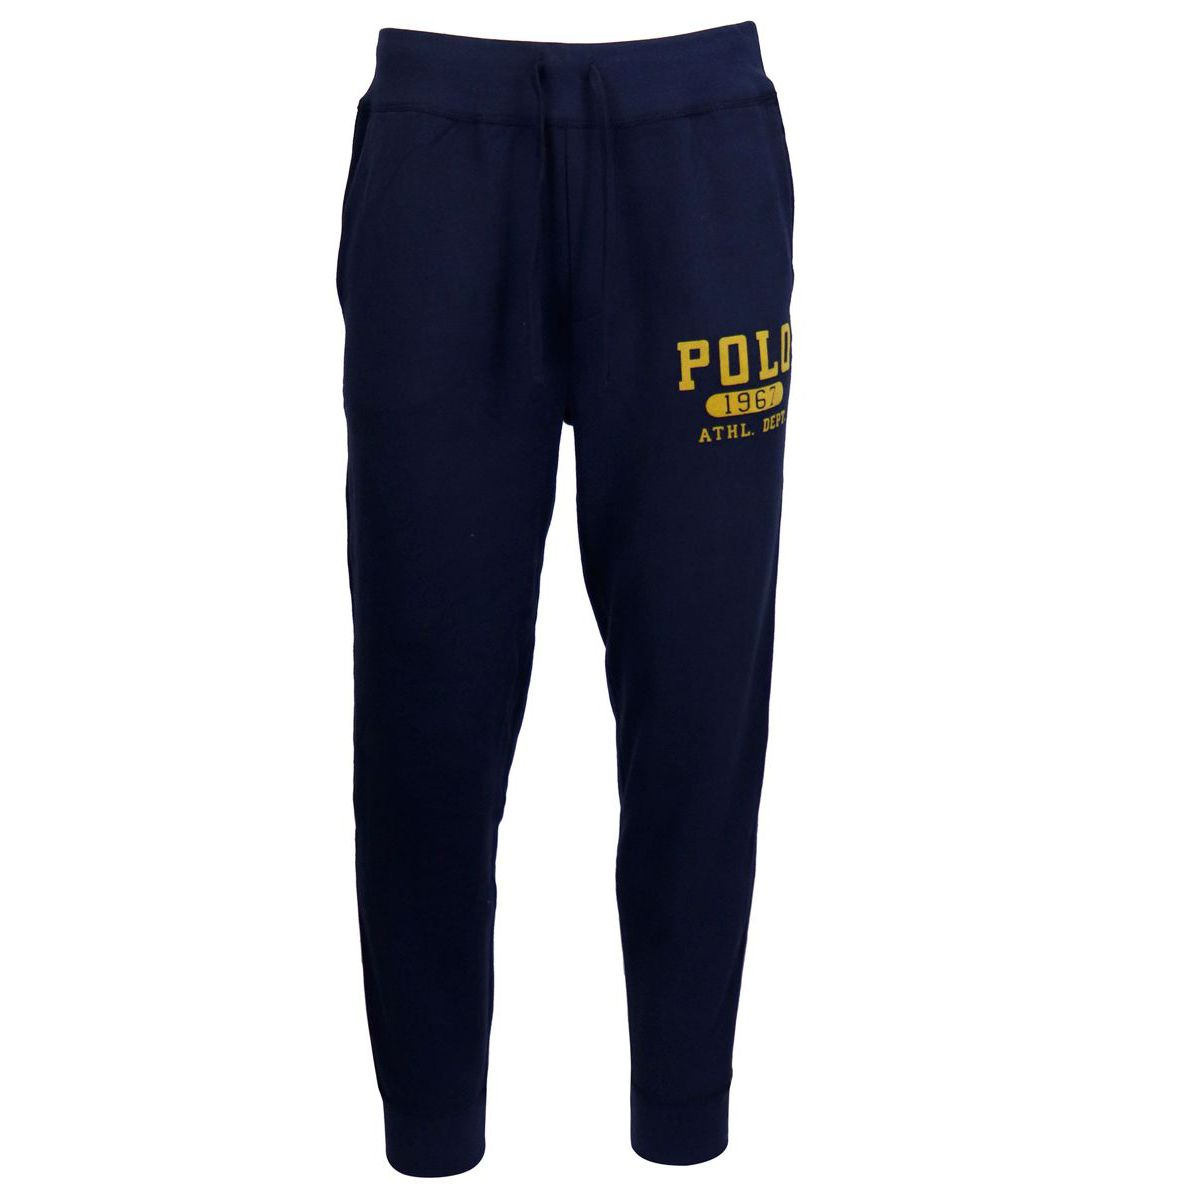 Cotton blend jogging trousers with contrast logo Navy Polo Ralph Lauren